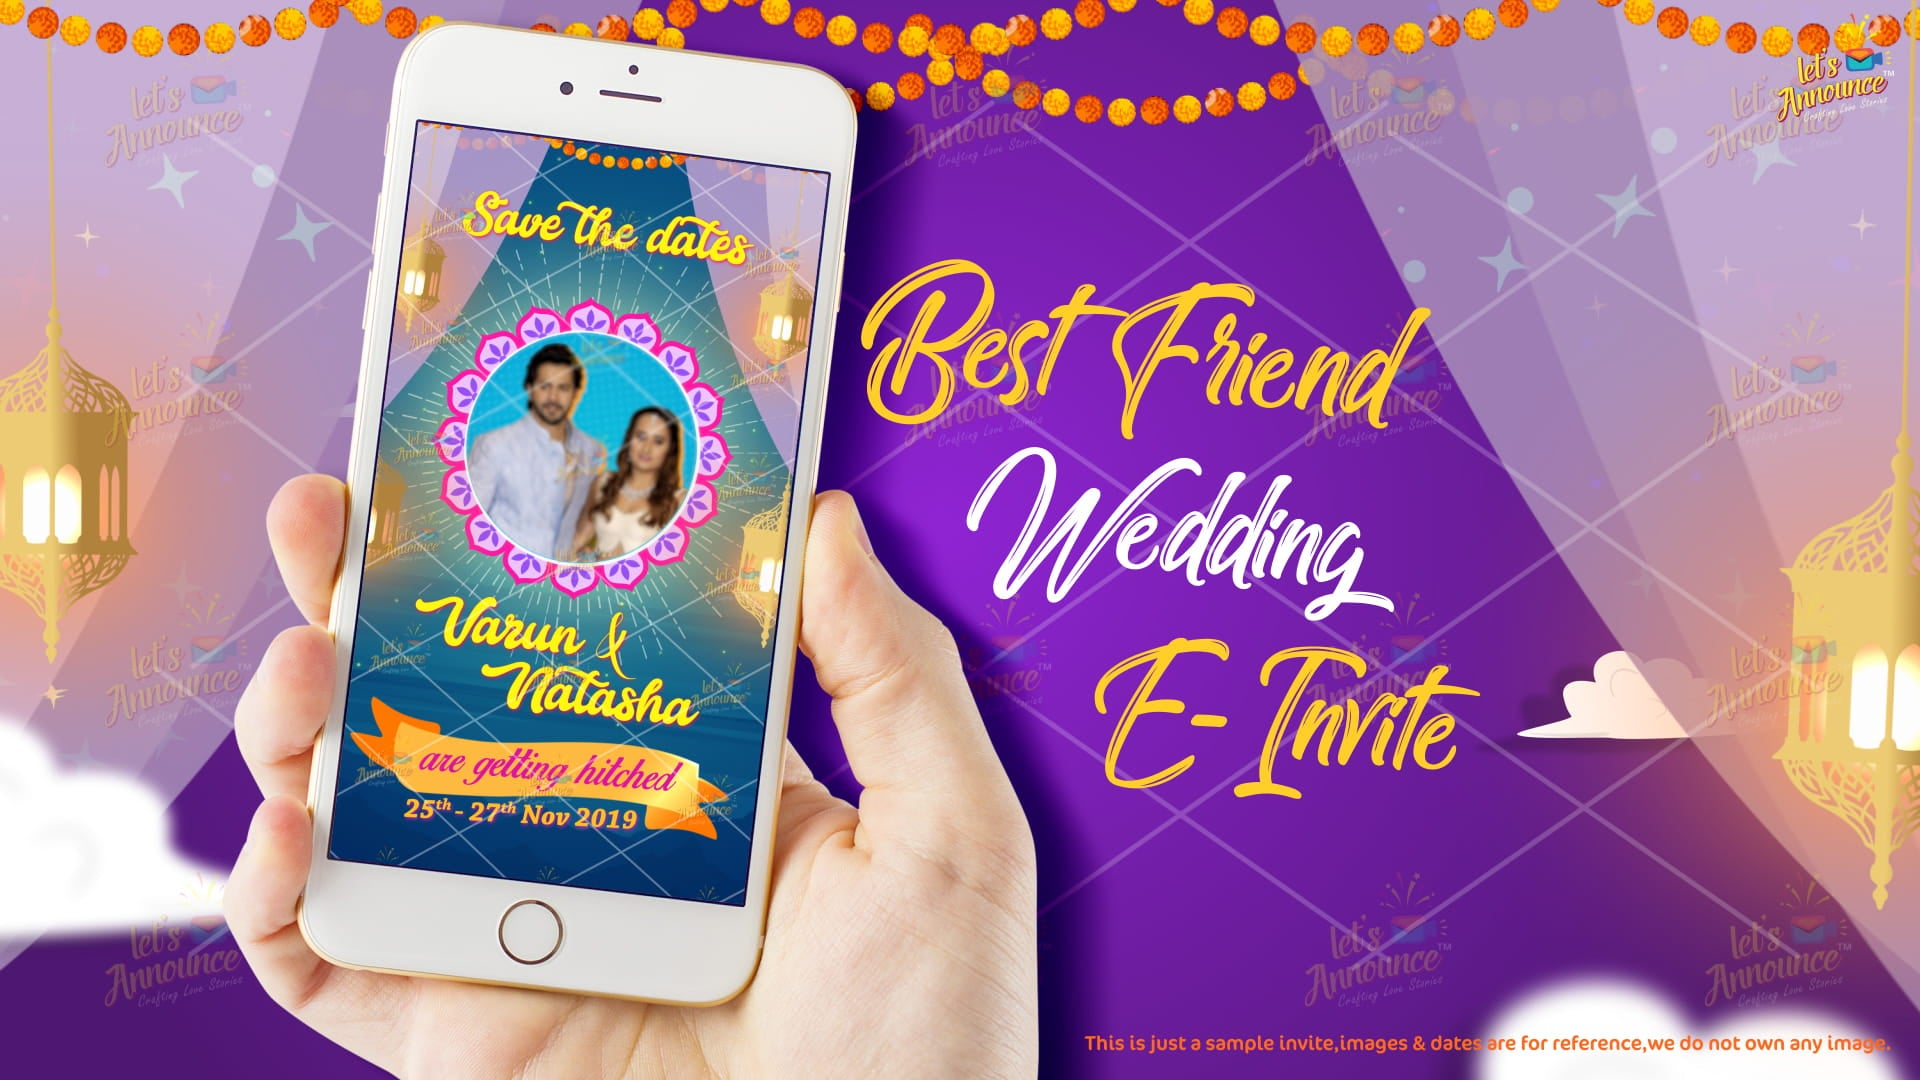 Best Friend Wedding Invite (USD 50$)